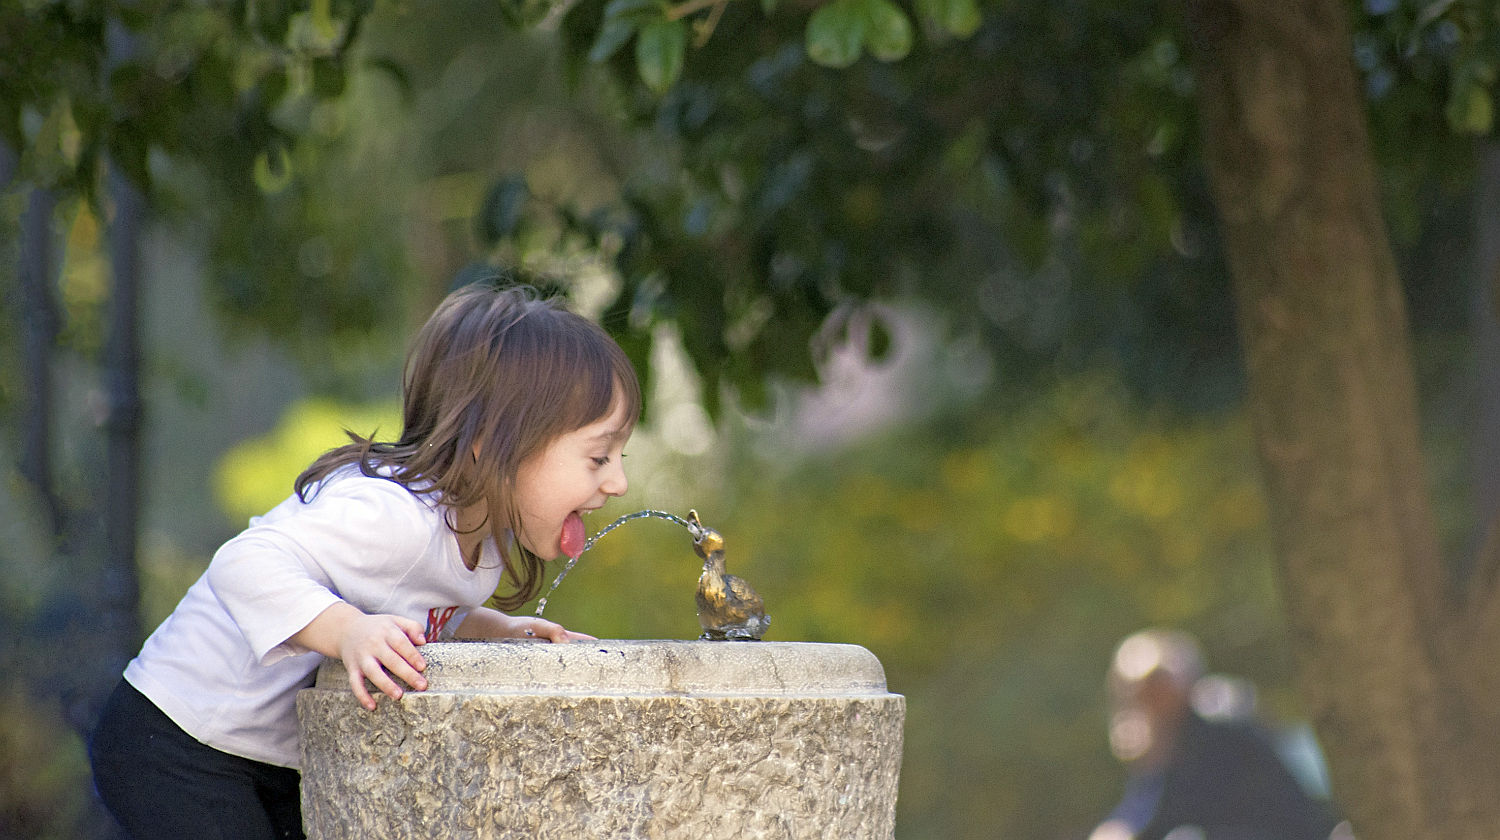 Feature | Girl thirsty drink fountain water | Is it Safe to Drink from a Public Water Fountain?